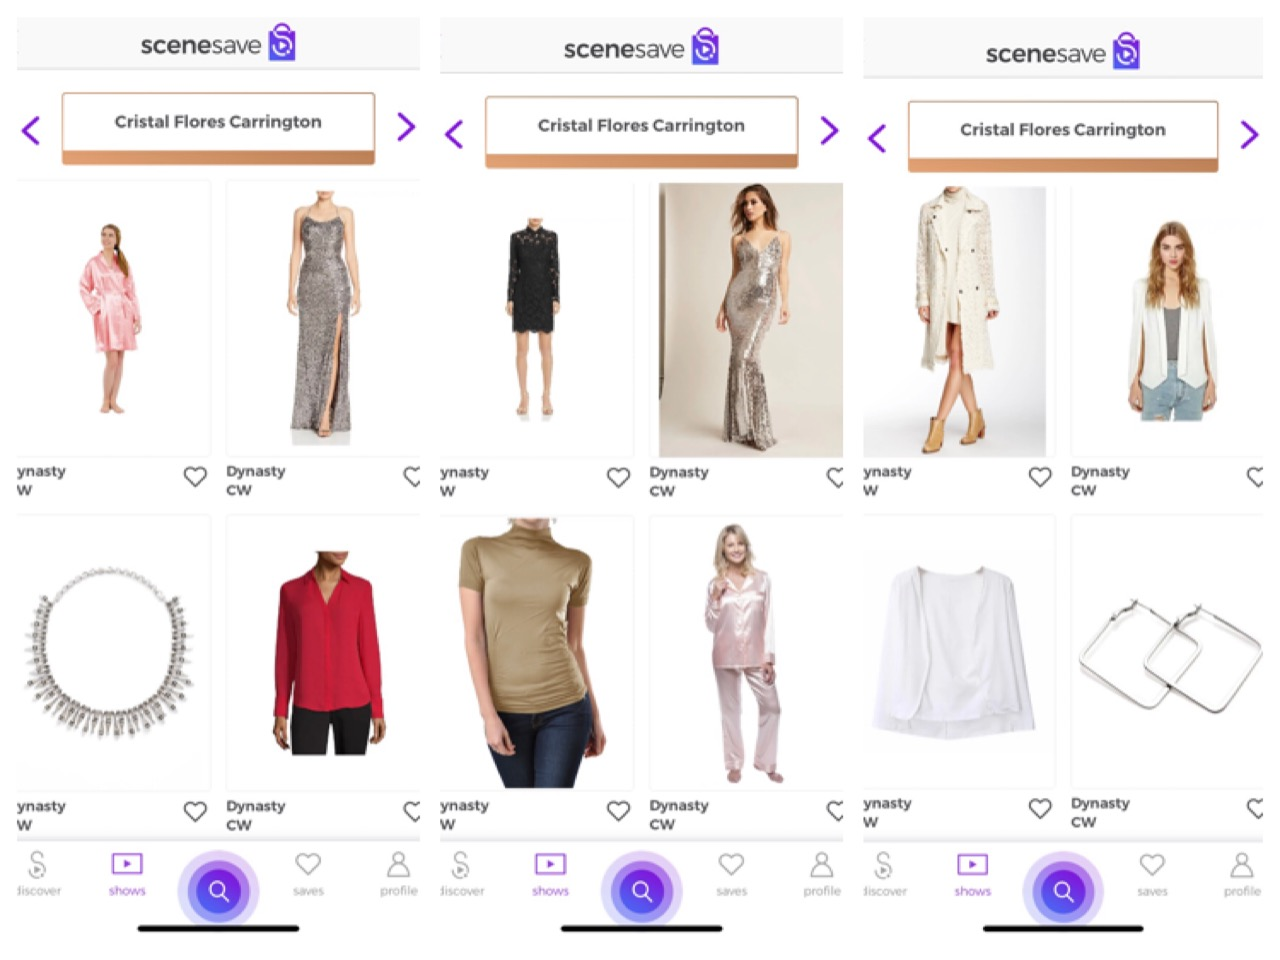 Download SceneSave  to shop these outfits!